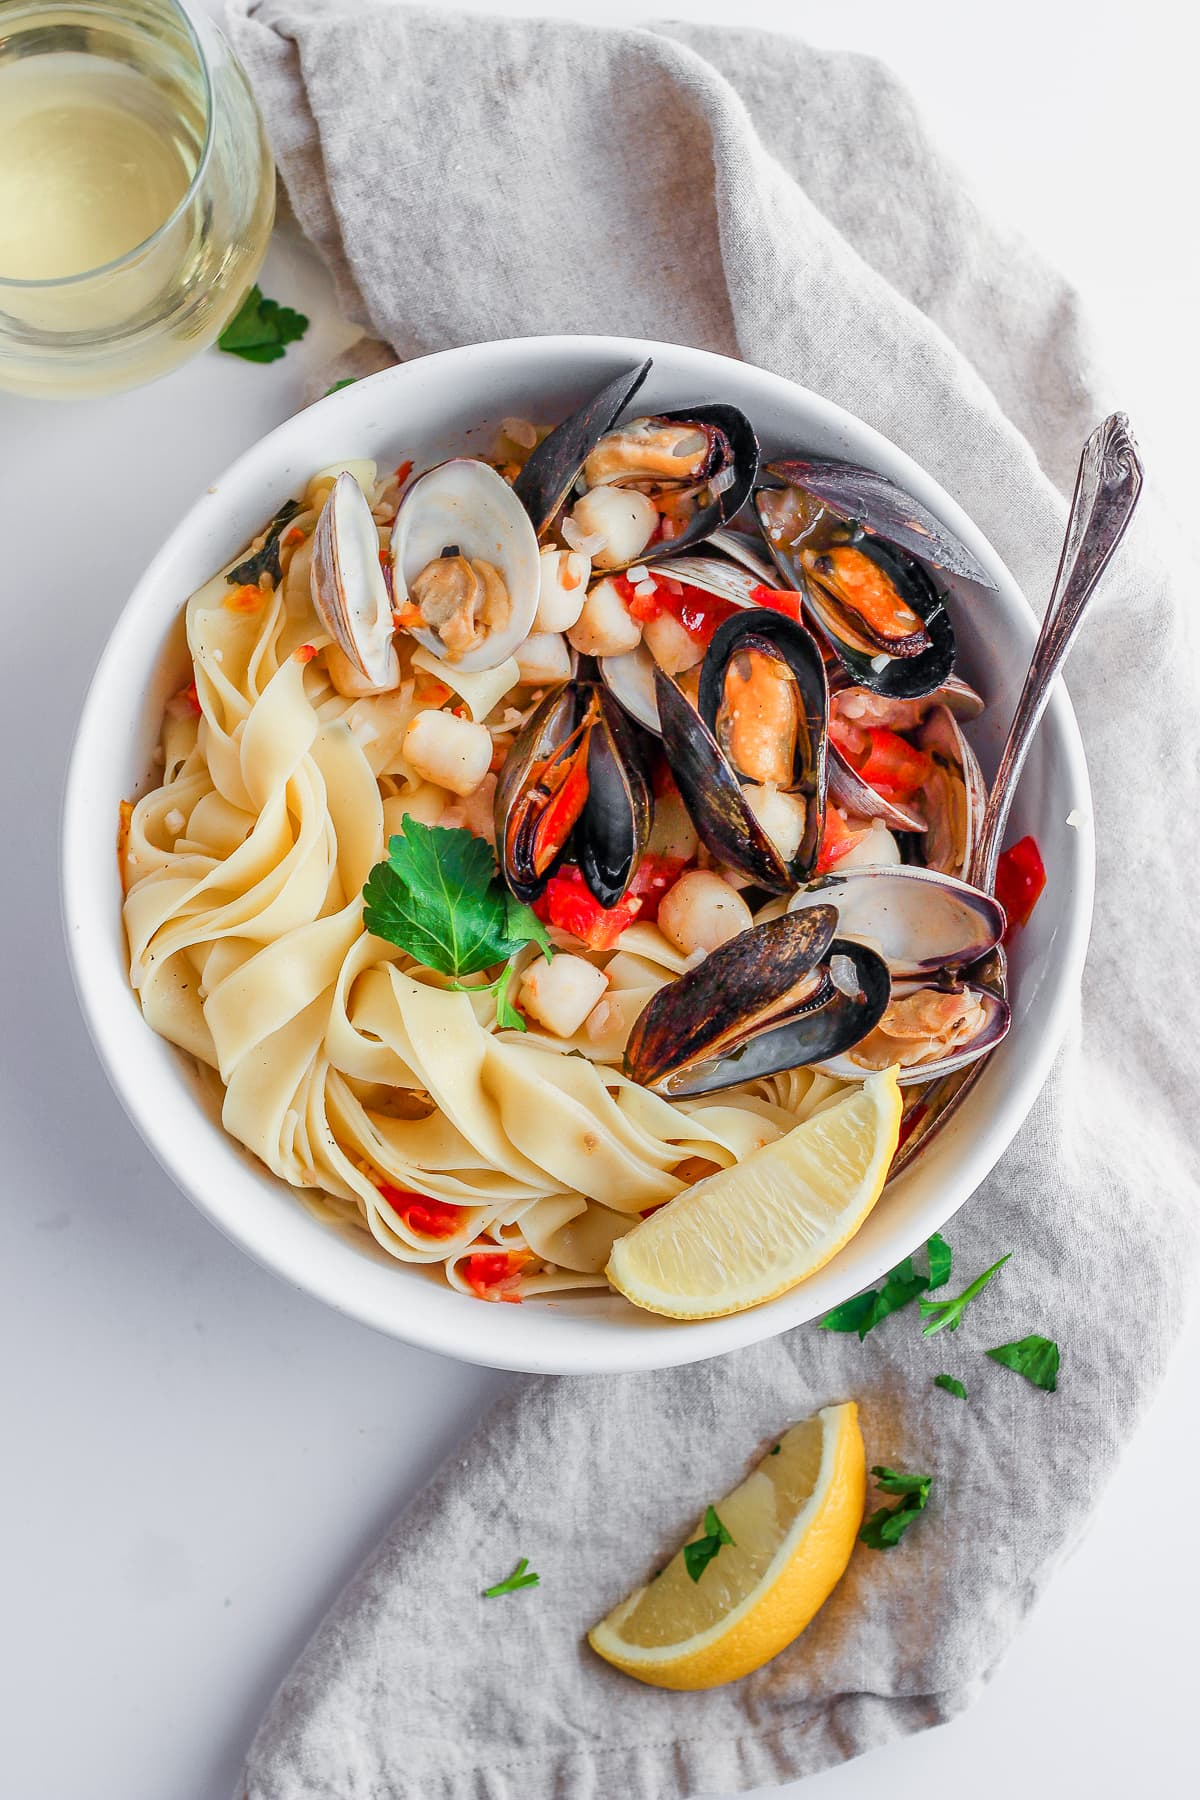 Fettuccine with Clams, Mussels and Bay Scallops - light and delicious meal that is perfect for any special occasion #dairyfree #glutenfree #valentinesday